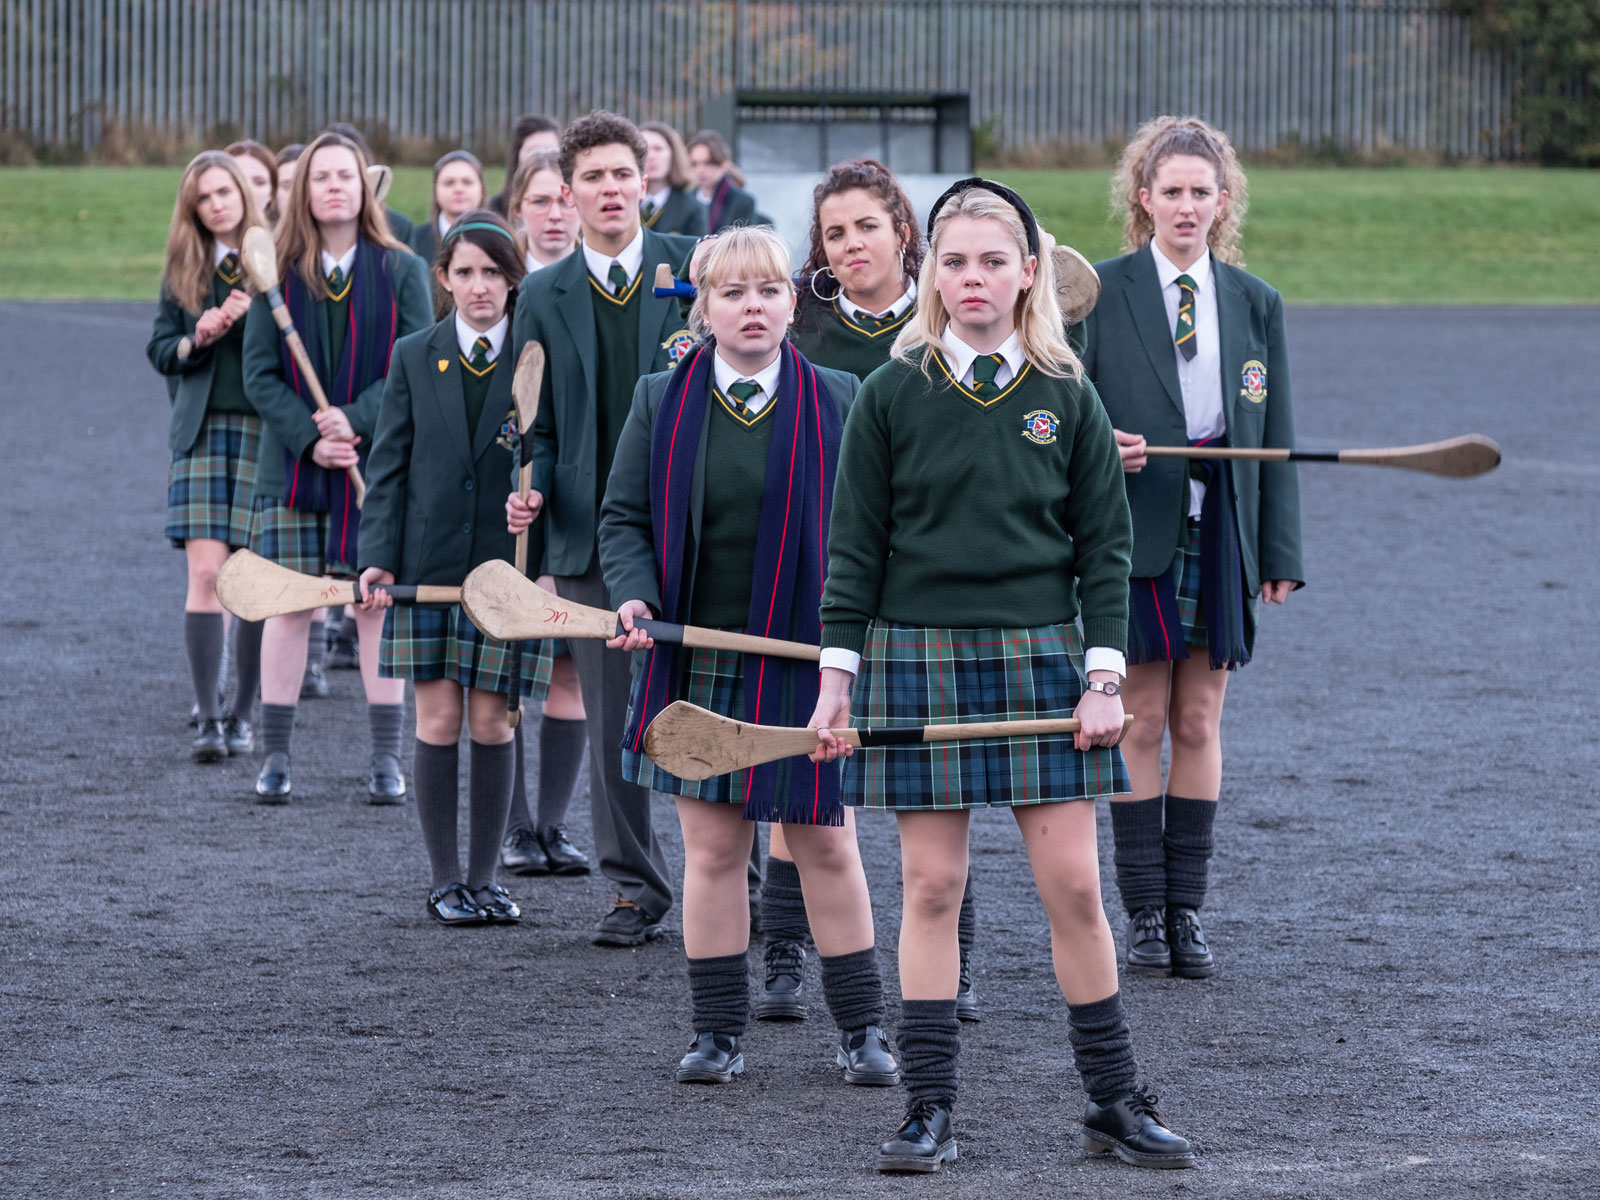 derry-girls-gbbs-crossover-FT-BLOG1119.jpg